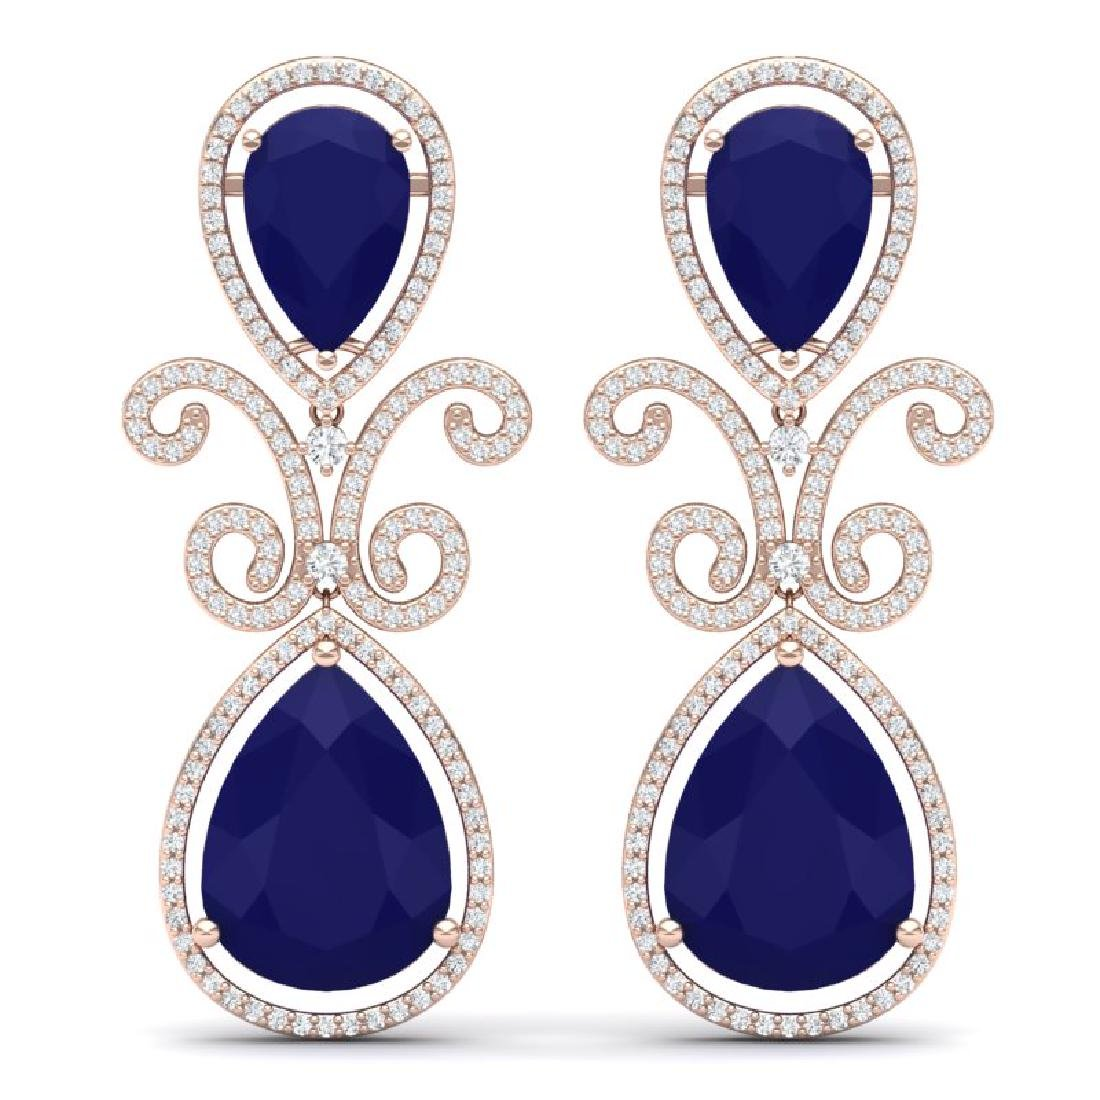 31.6 CTW Royalty Sapphire & VS Diamond Earrings 18K